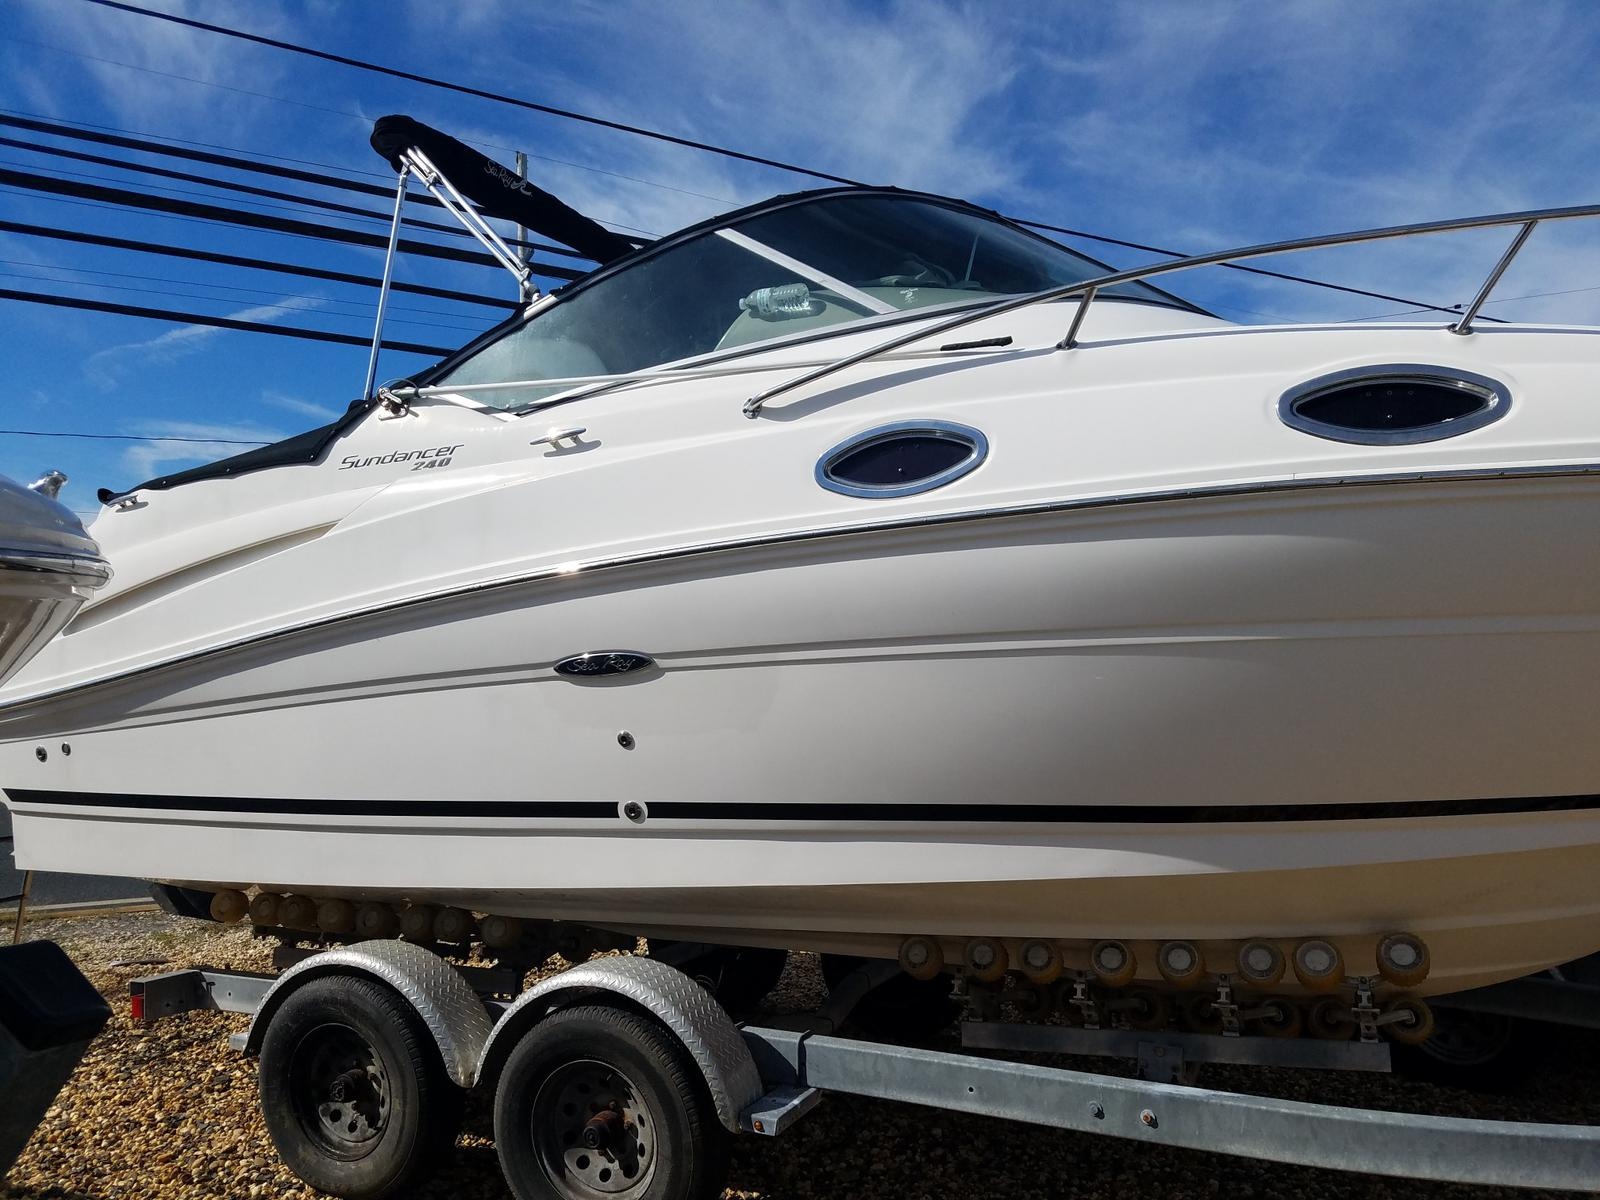 Inventory from Sea Ray and Chaparral Coty Marine Toms River